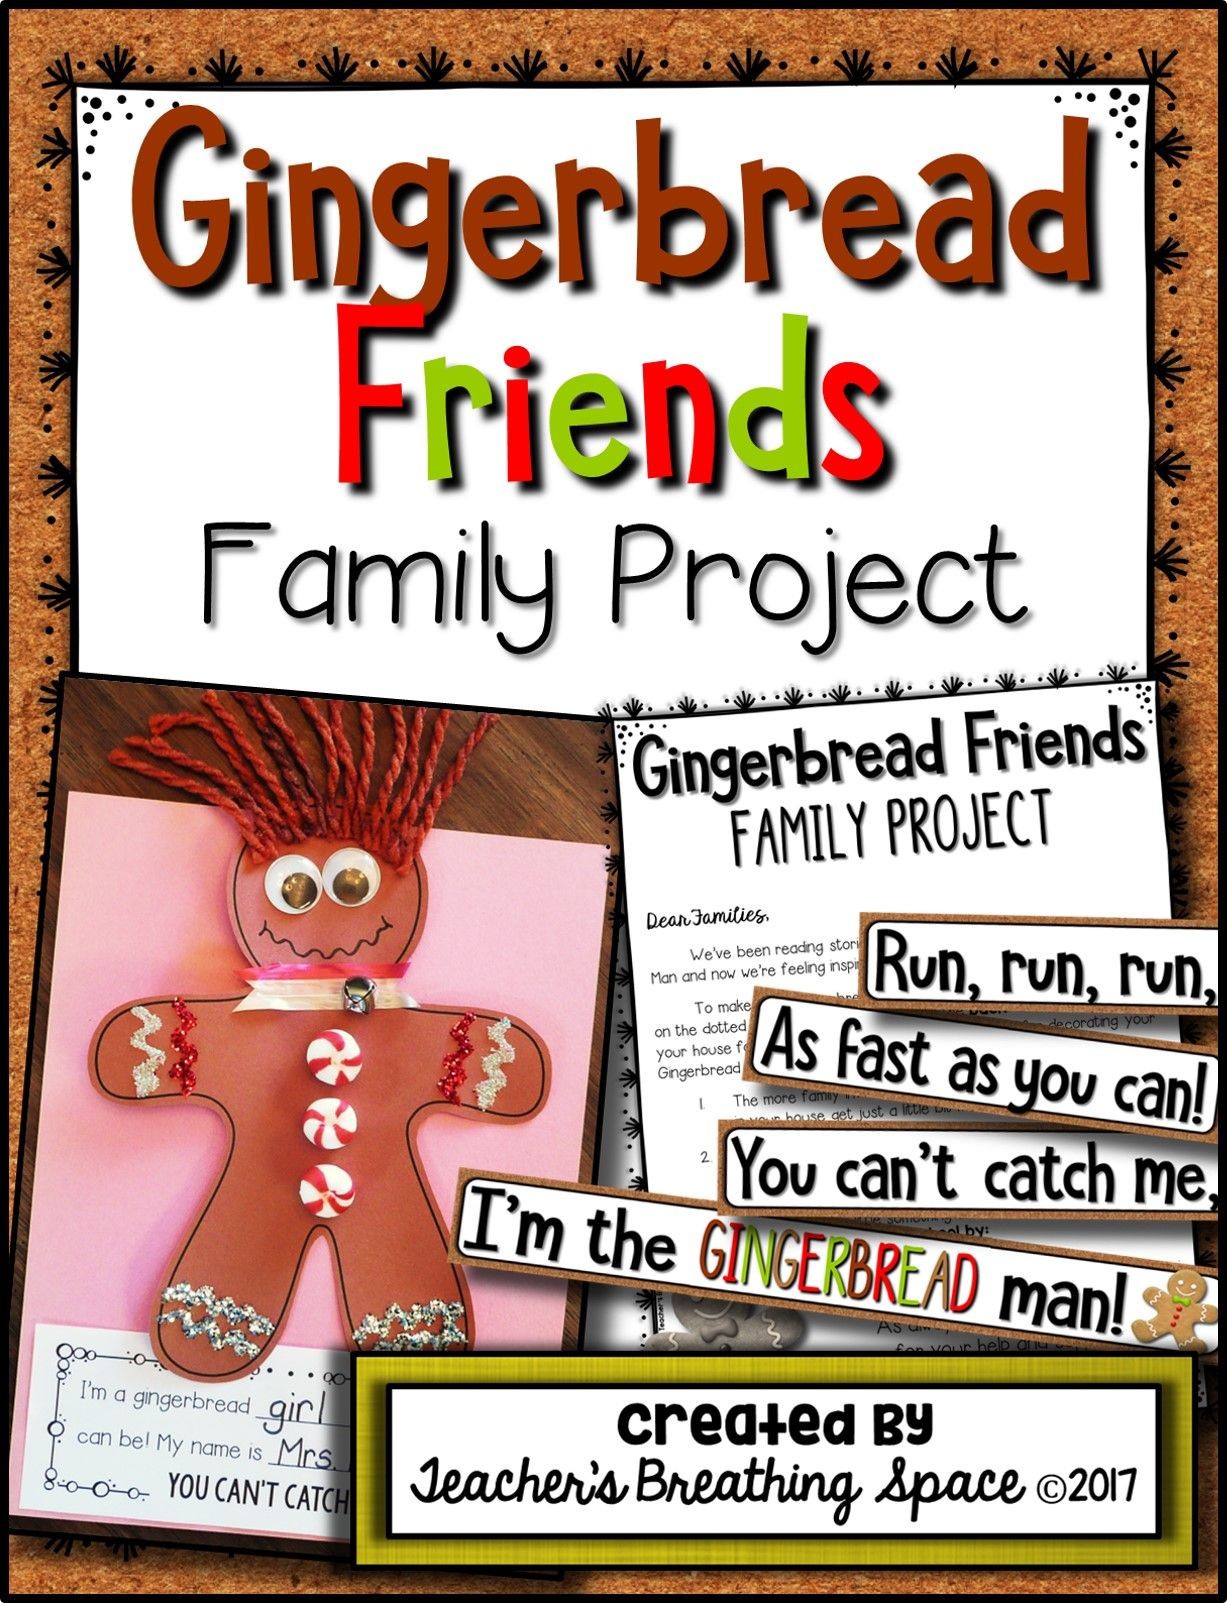 Gingerbread Family Project Fun Family Project For Christmas